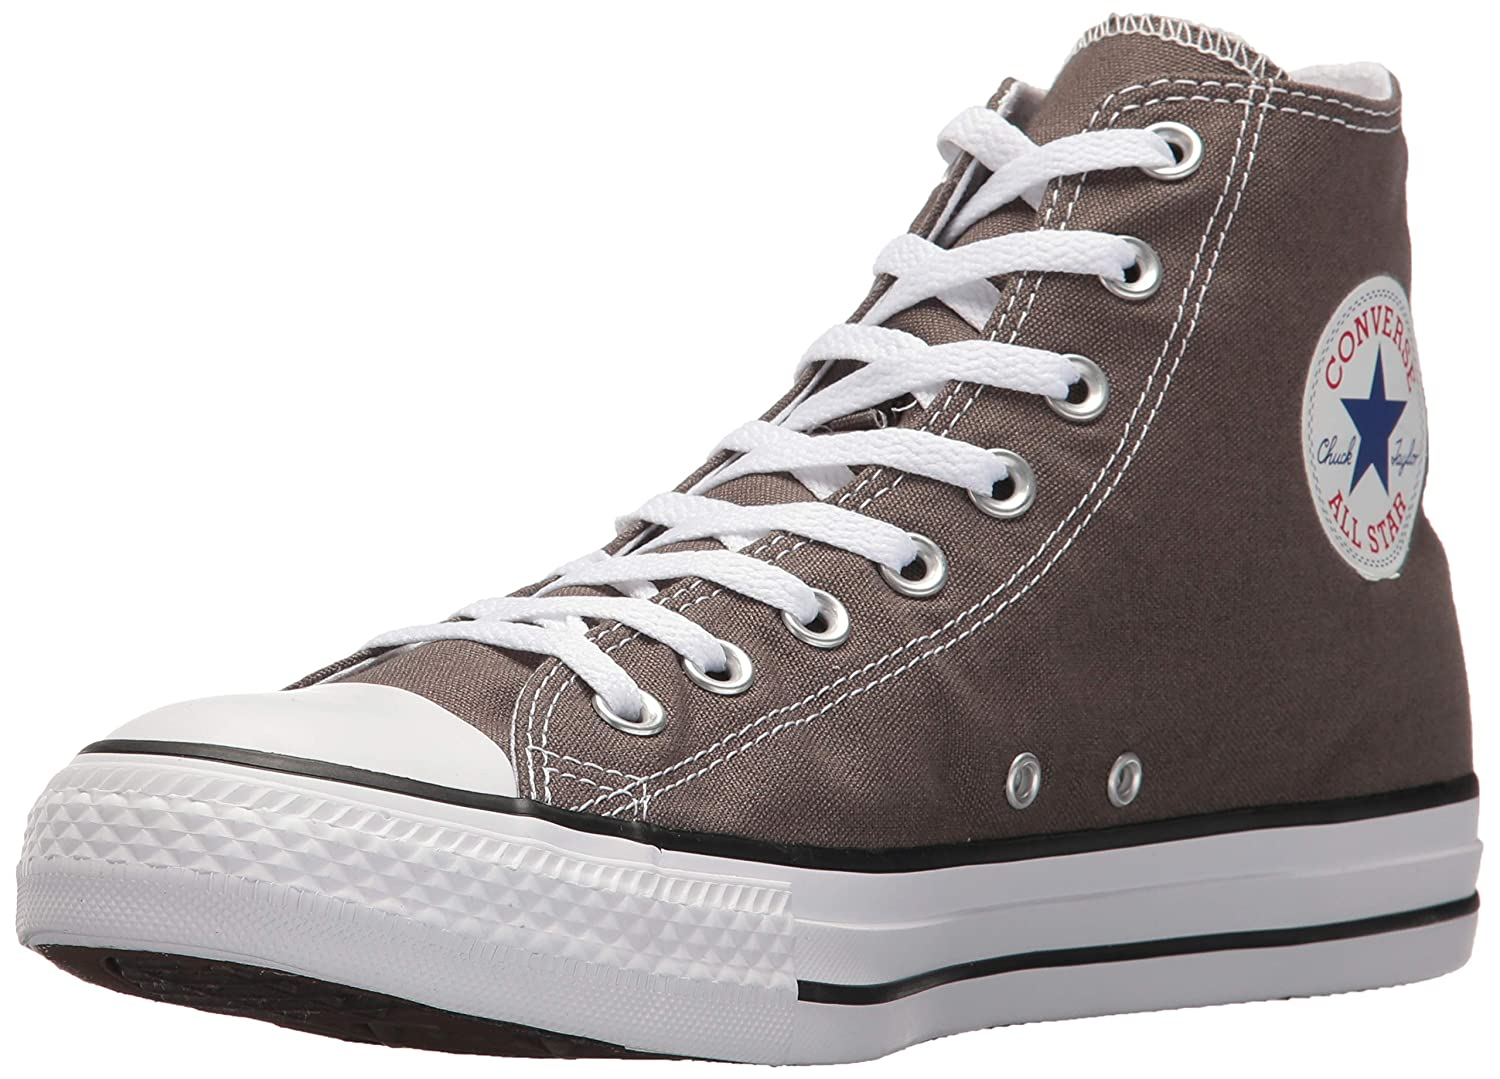 416fa0ce43f Converse Chuck Taylor All Star Season Hi Trainers  Amazon.co.uk  Shoes    Bags